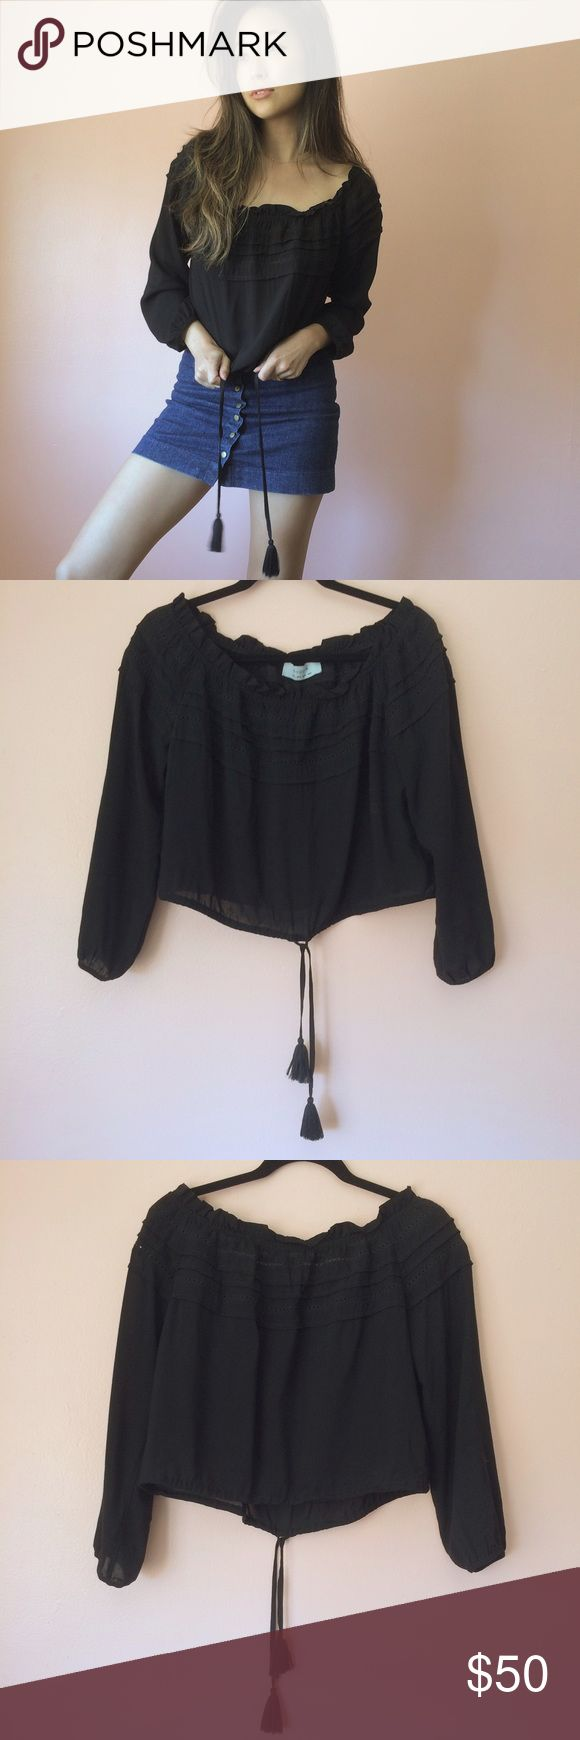 Auguste Gypsy Off Shoulder Peasant Top When it's still Indian summer, throw on this lightweight peasant top by Auguste. Features a smocked neckline, drawstring hem, long sleeves and versatile off the shoulder or not. Wear with denim and delicate gold jewelry. MSRP $135. Fits true to size. Marked US 4/S. No returns allowed. Please ask all questions before buying. IG: [at] jacqueline.pak #auguste #revolve Auguste Tops Blouses